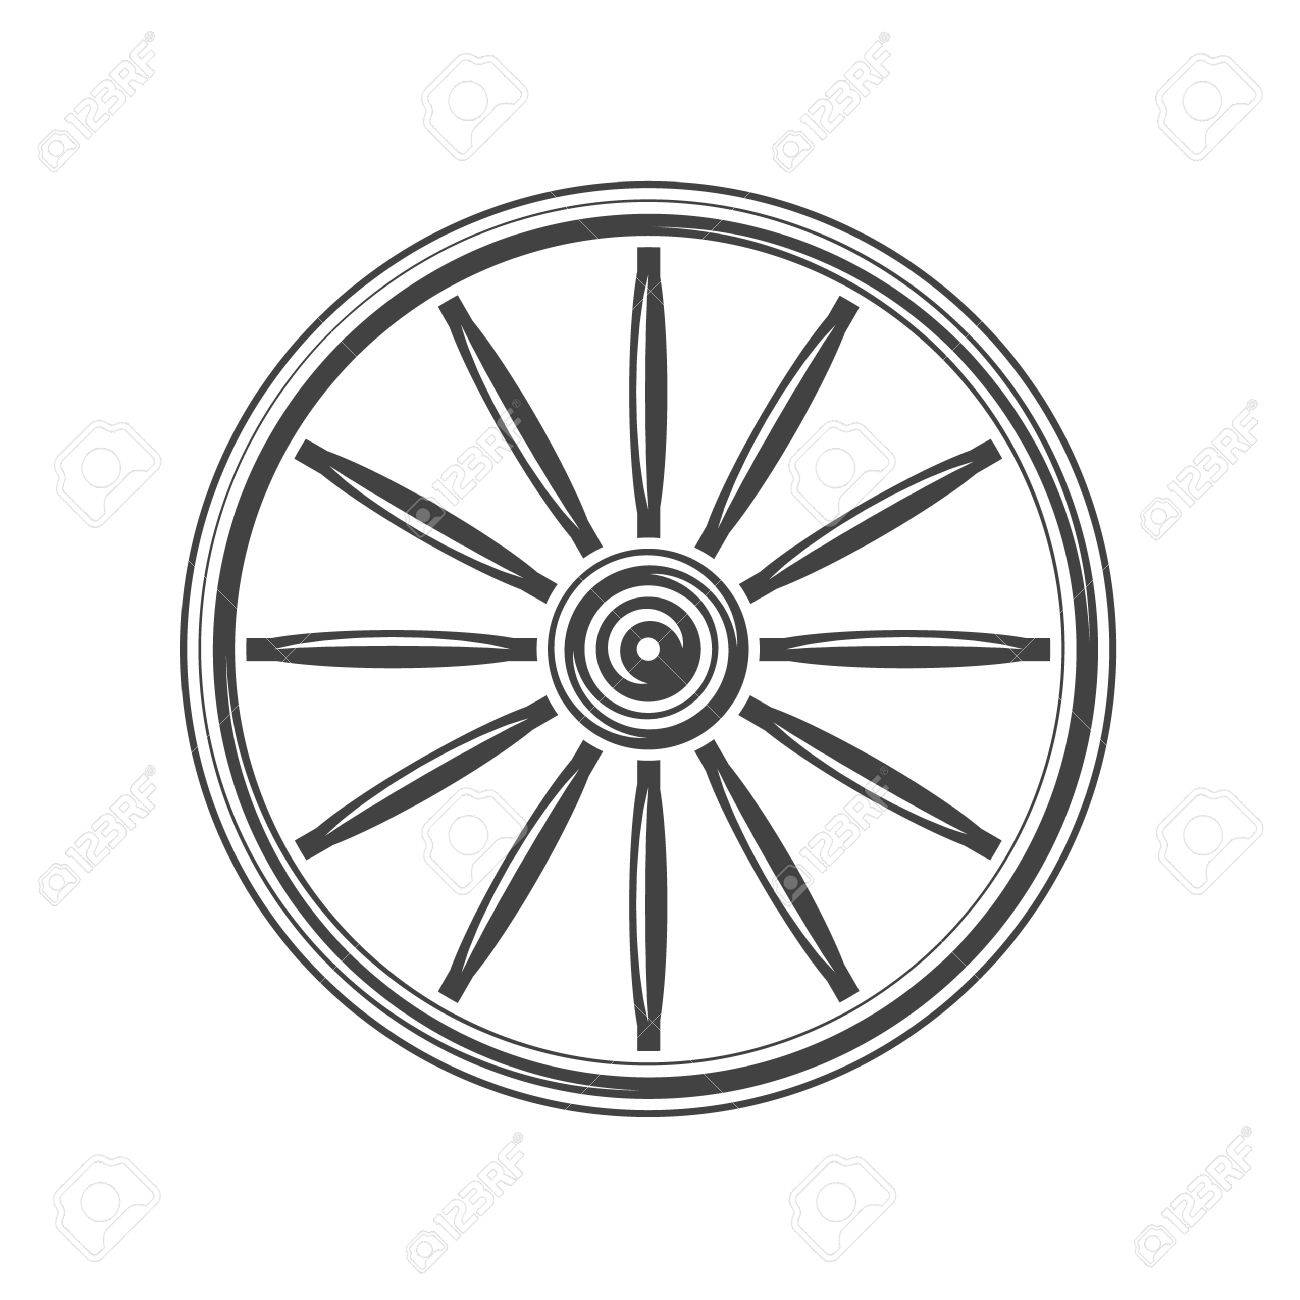 Wagon Wheel Drawing At Getdrawings